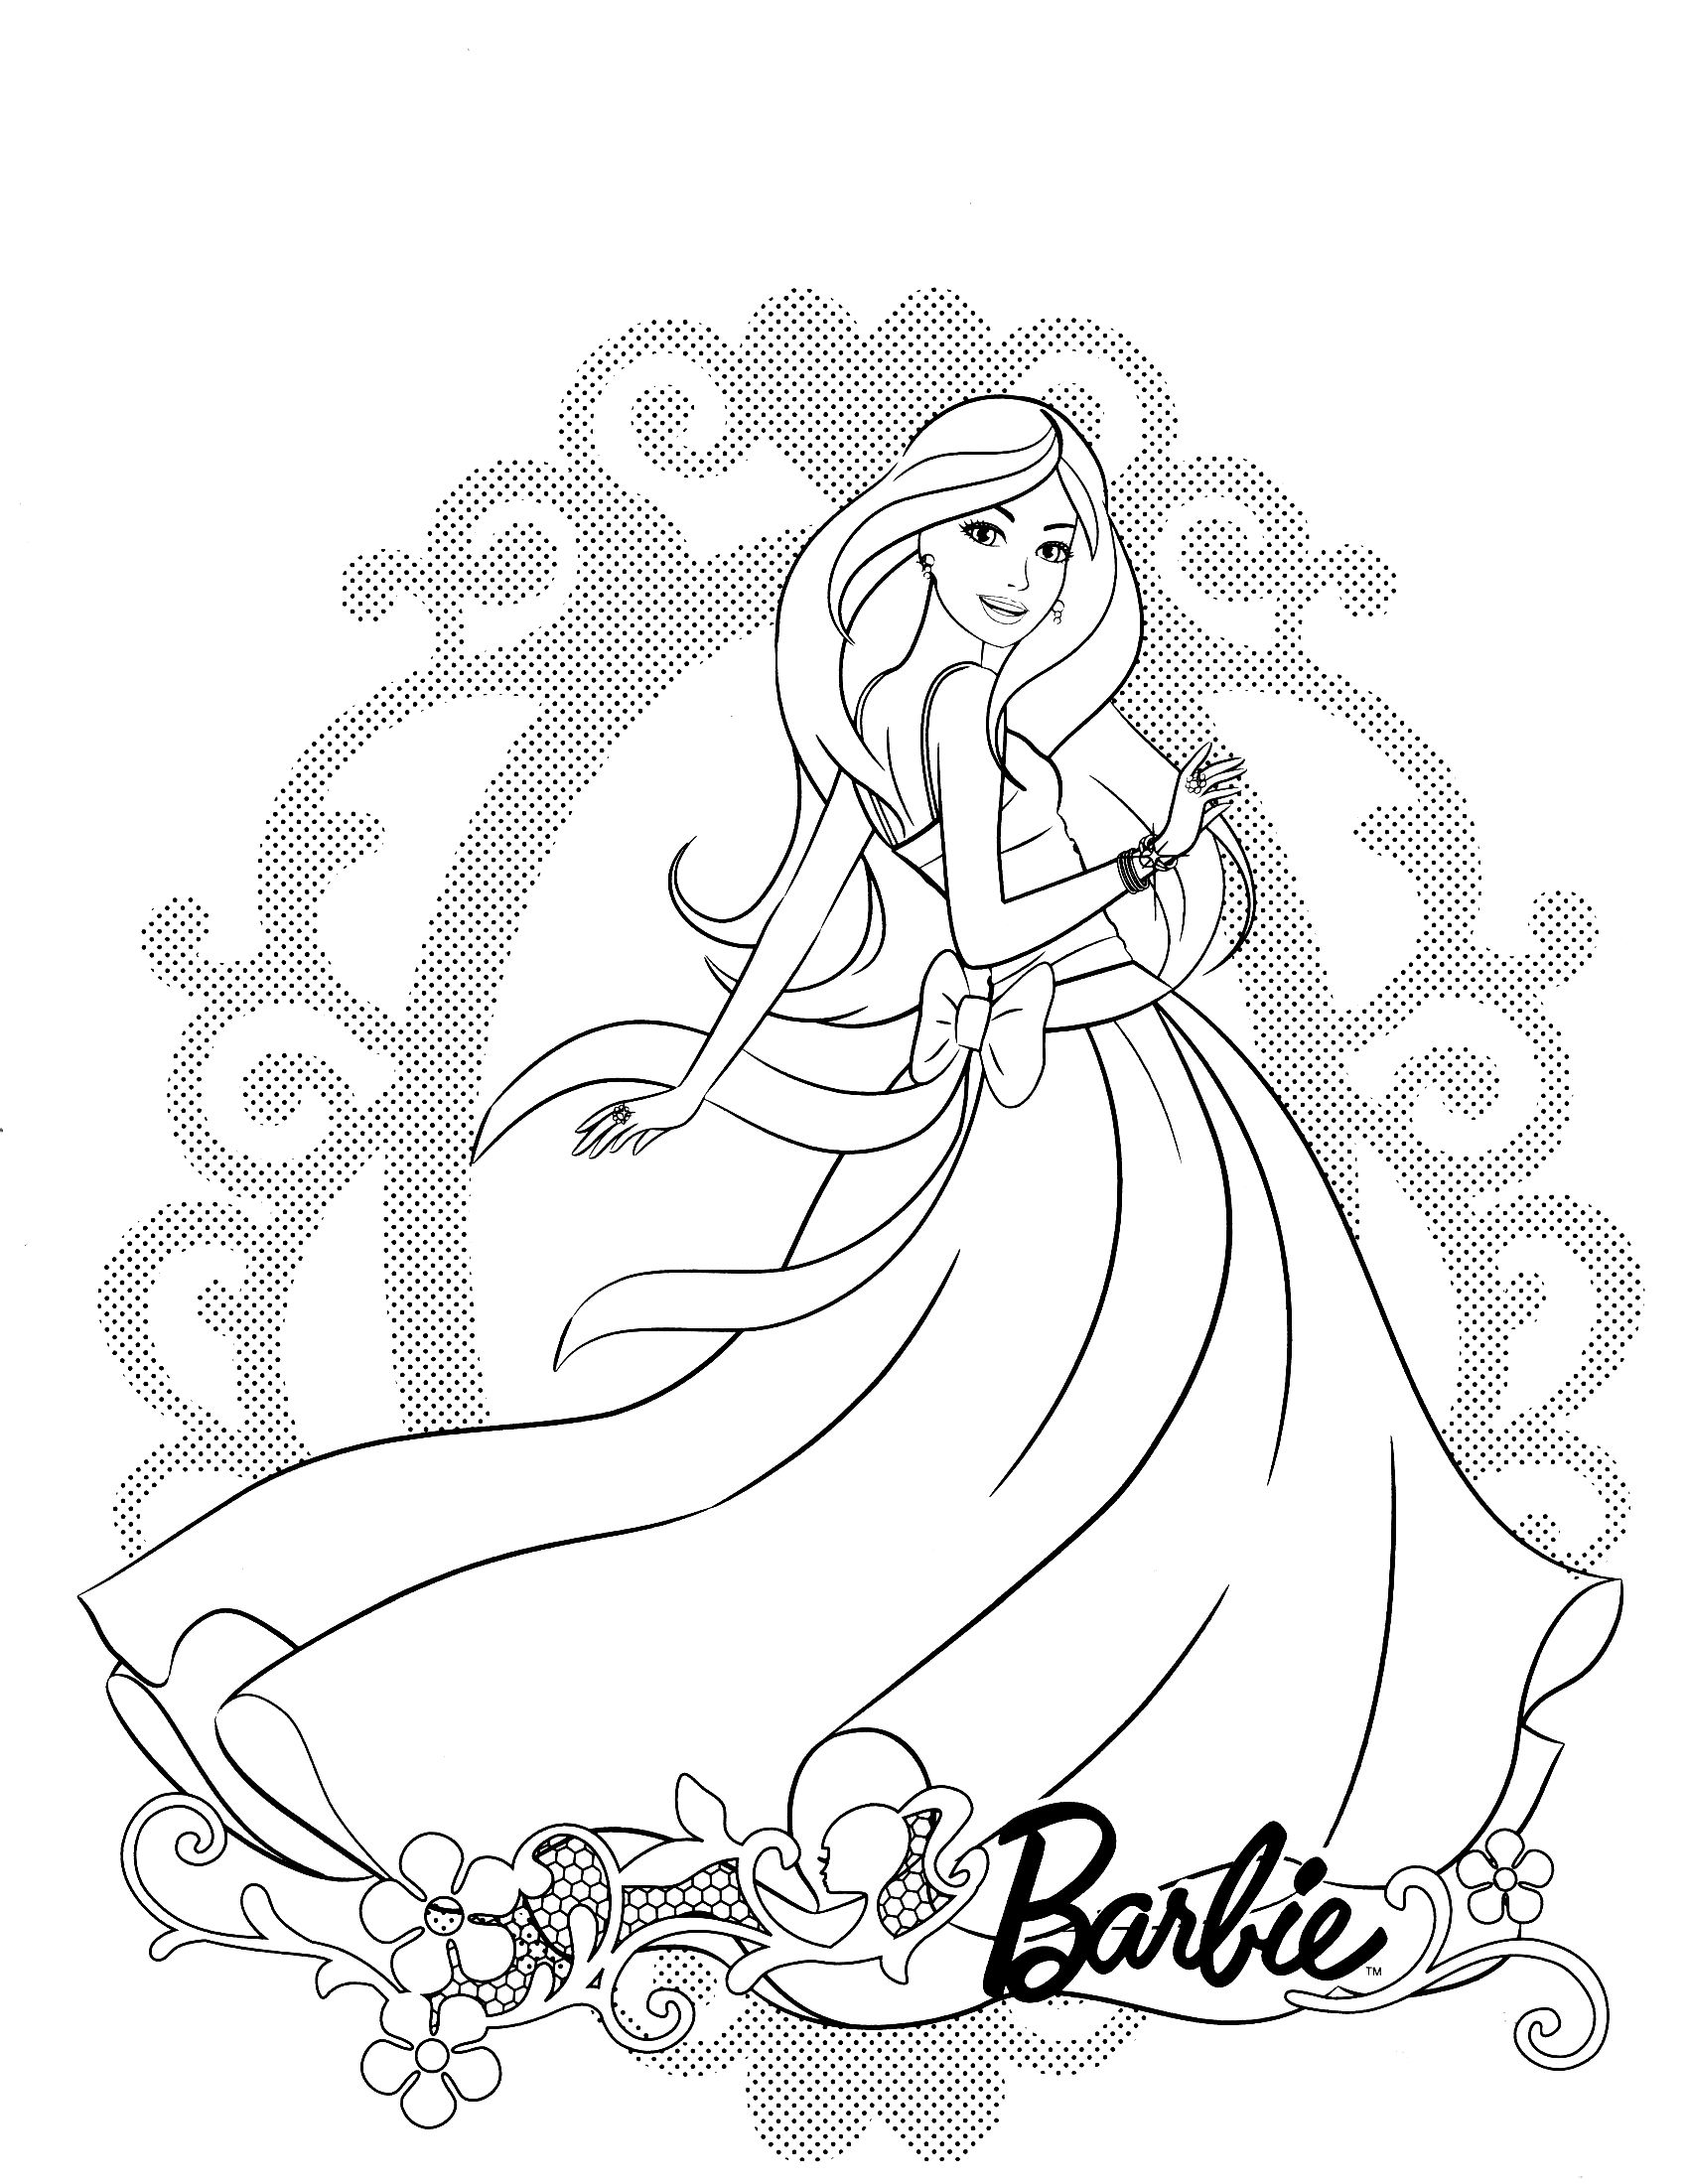 dream house coloring pages barbie dream house coloring pages at getcoloringscom dream pages house coloring